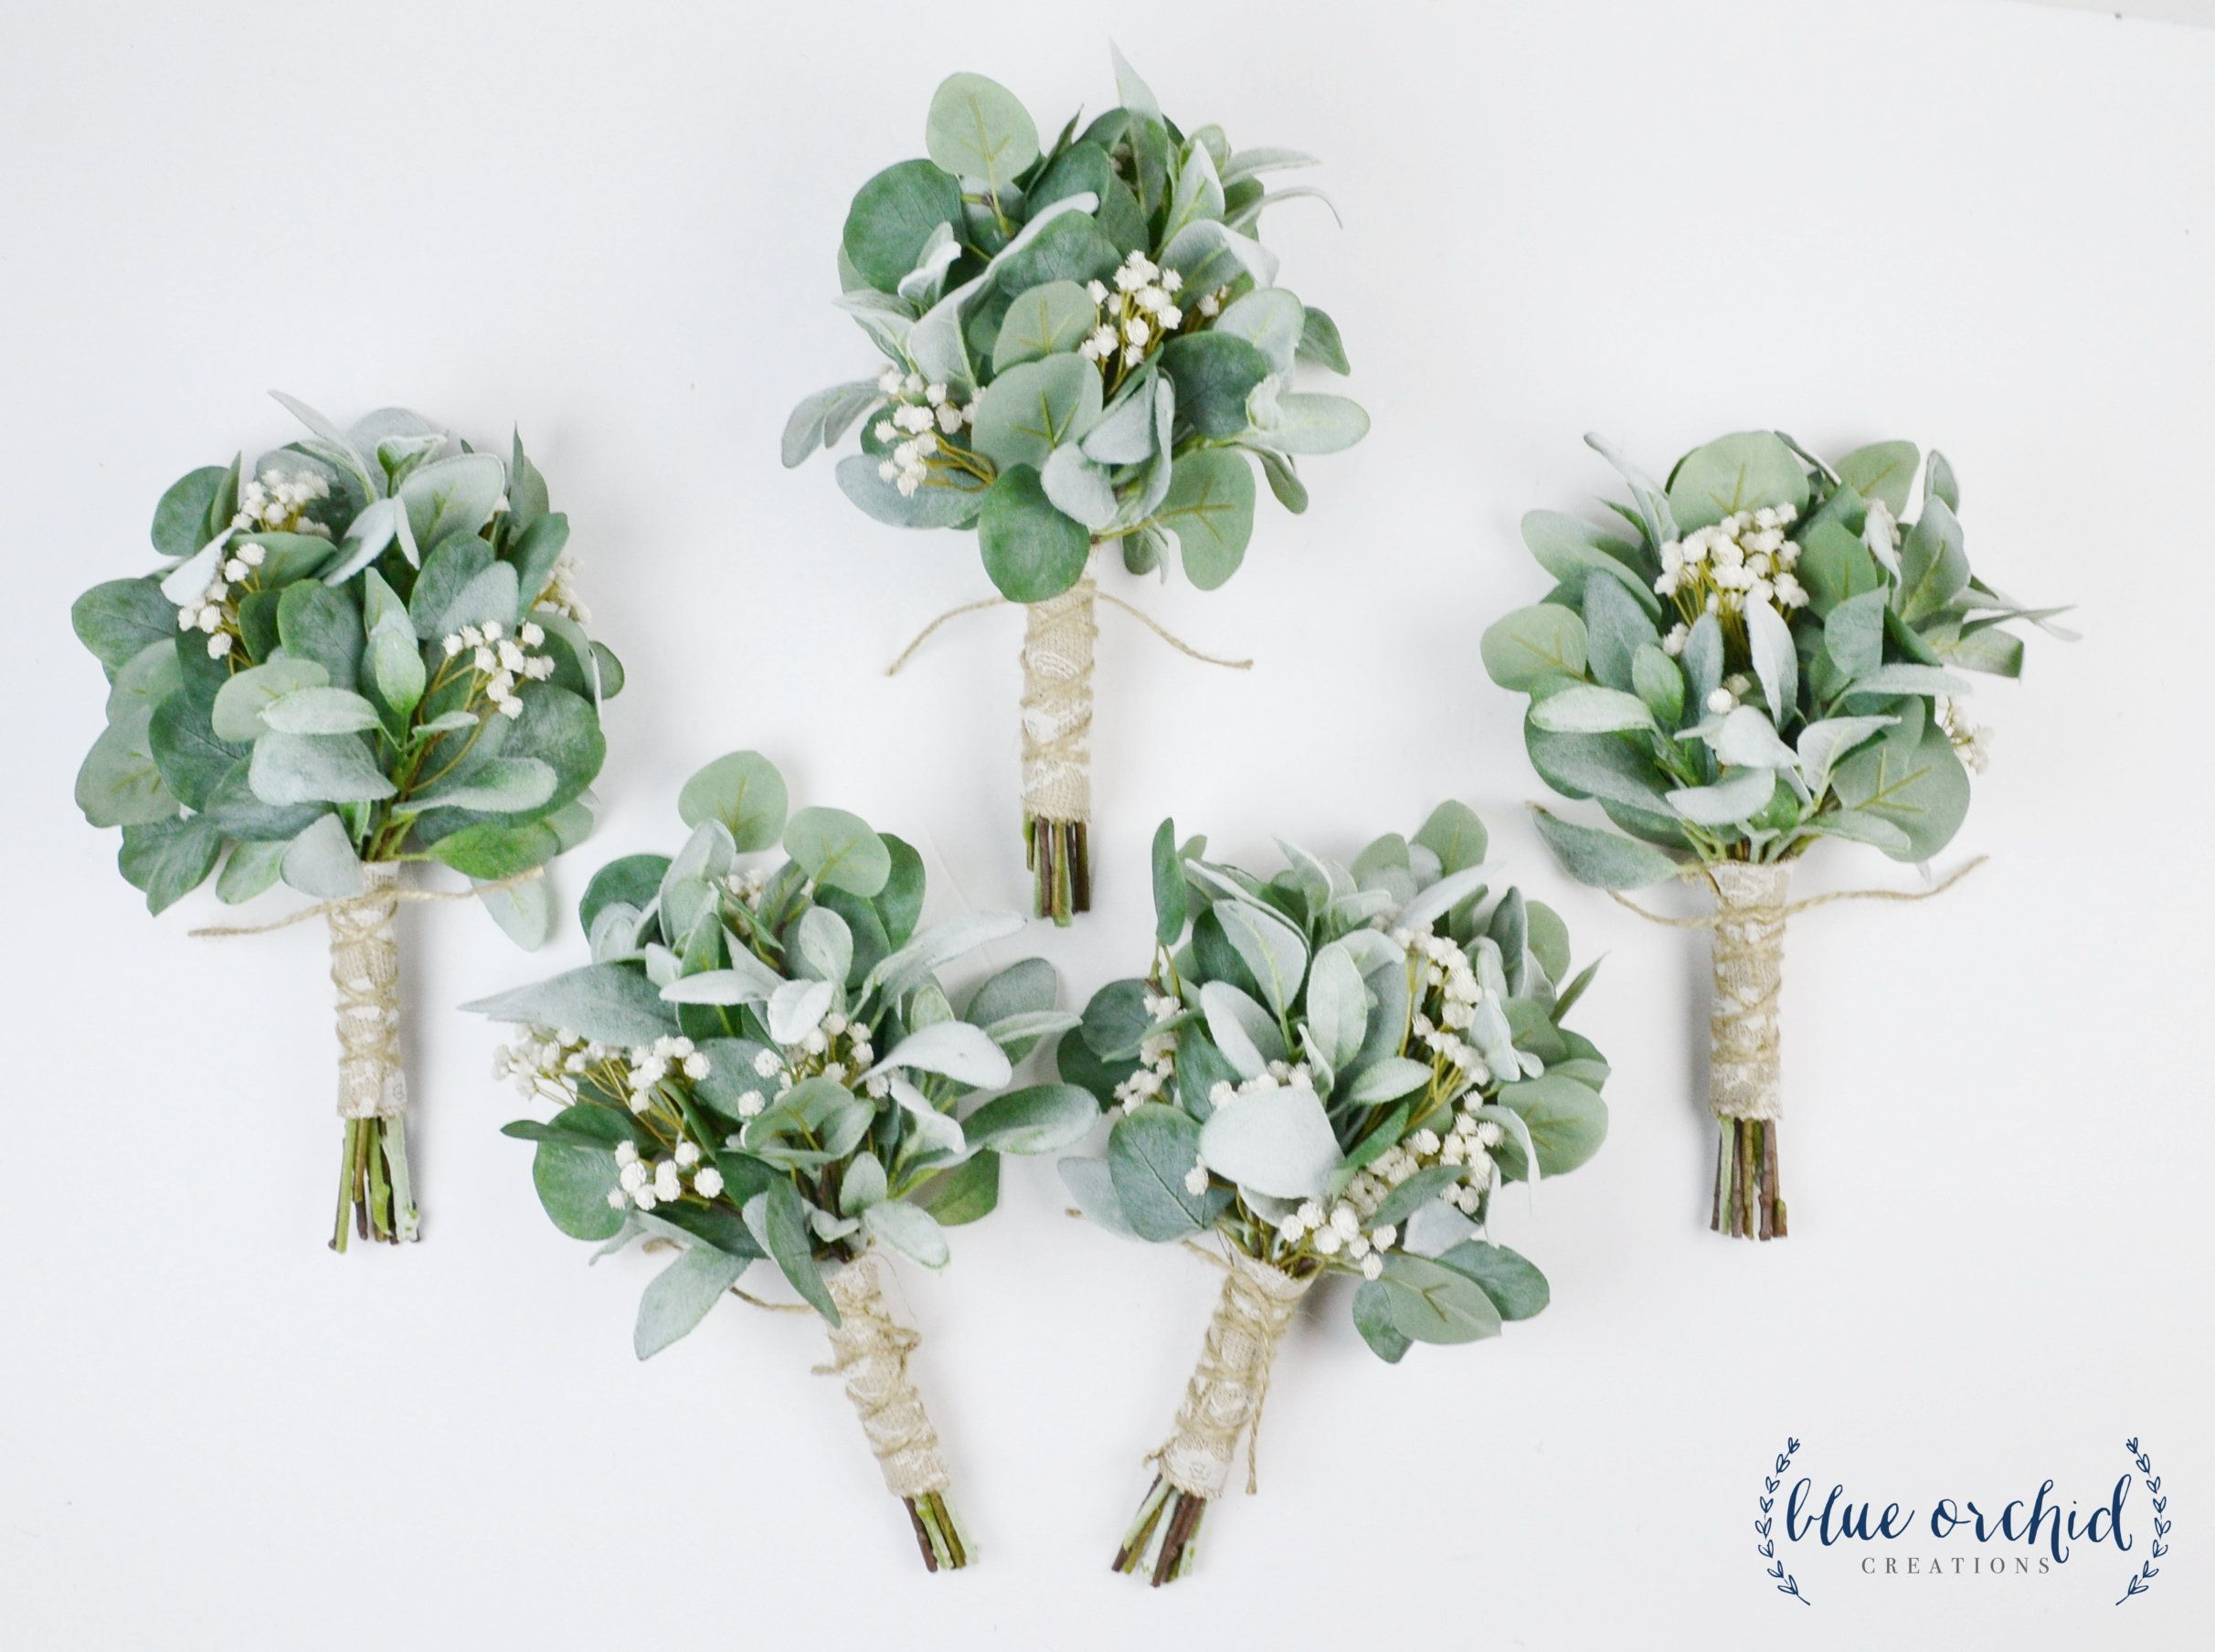 wedding flowers, greenery bouquets, wedding bouquets, bridesmaid bouquets, fall wedding, winter wedding, greenery, eucalyptus, boho bouquets #bridesmaidbouquets